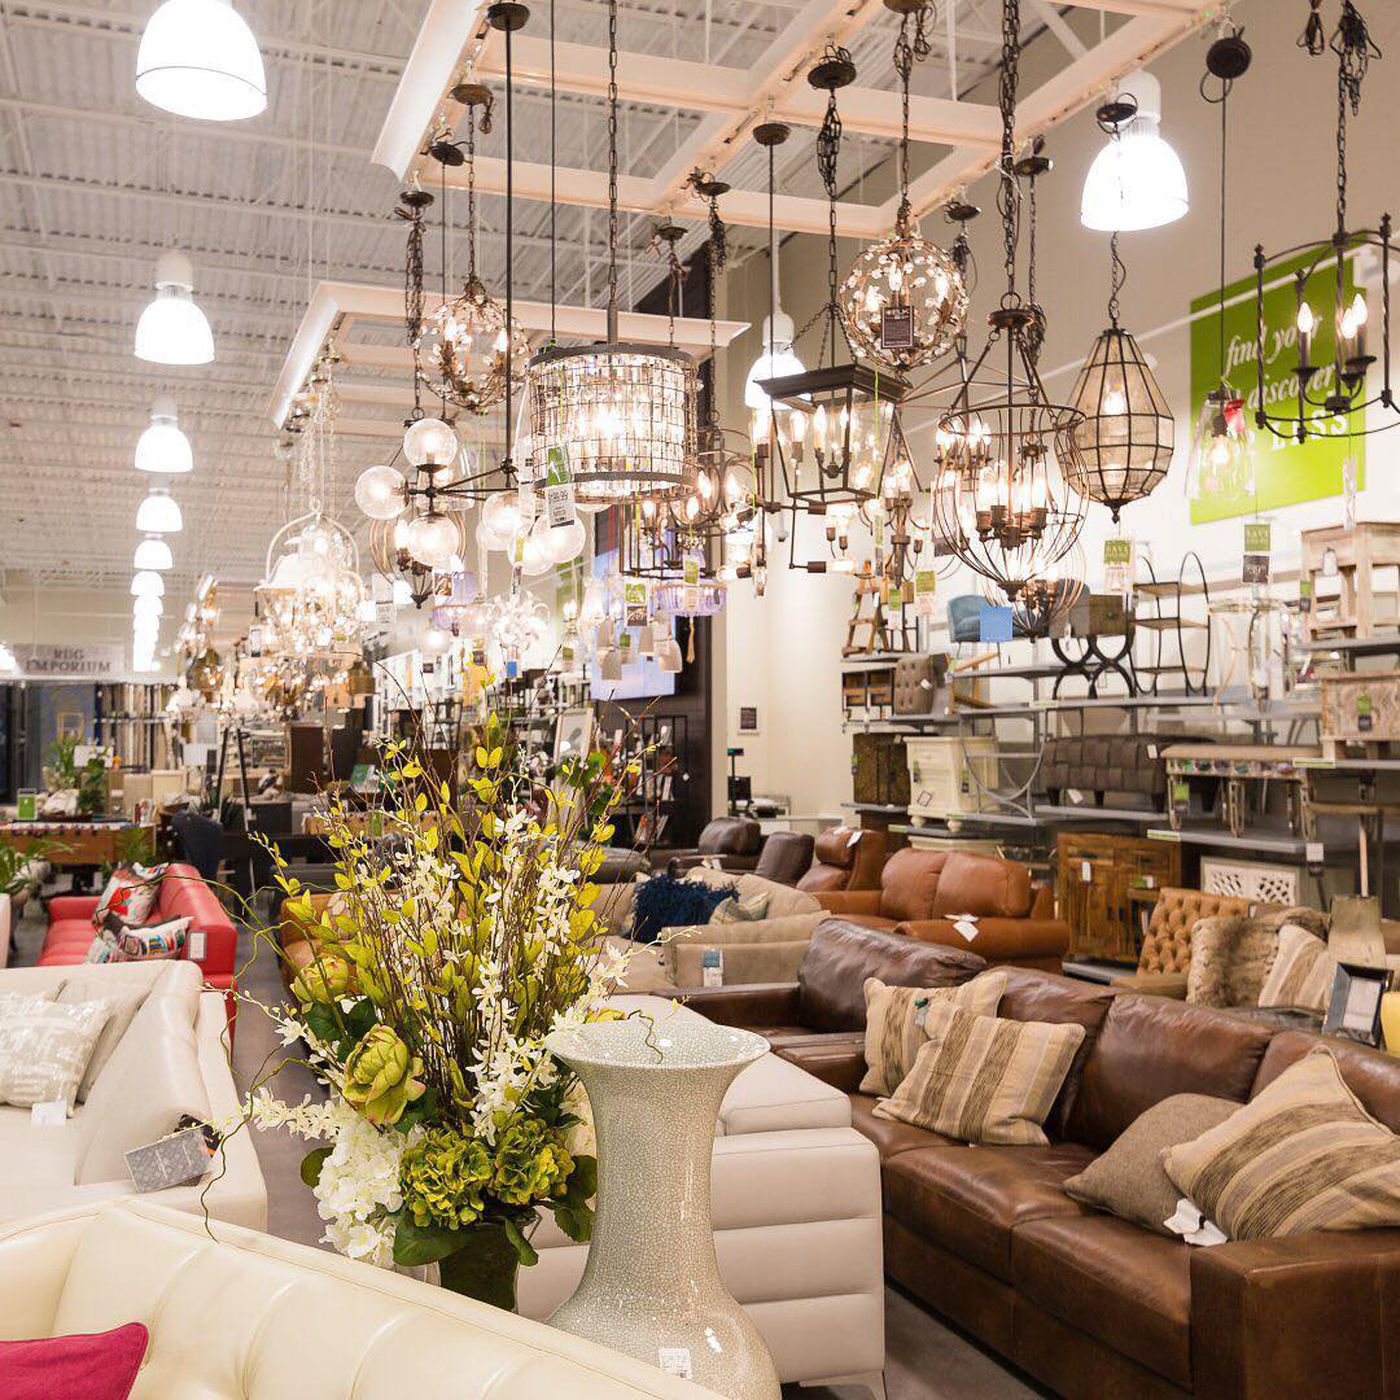 Homesense Stores To Expand With 400 Locations Planned Curbed